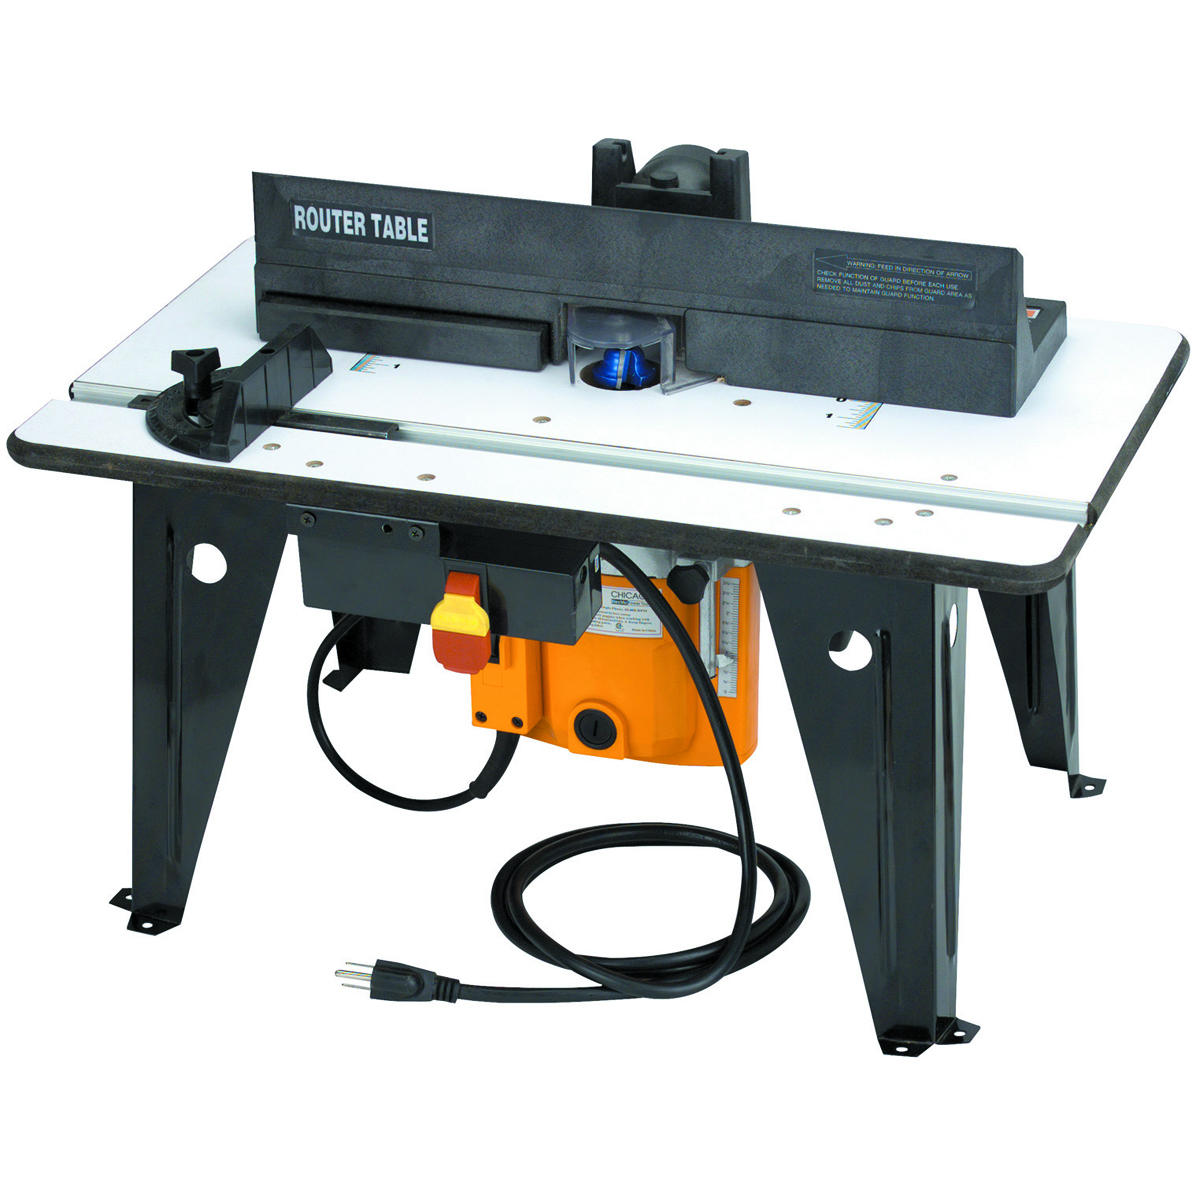 Benchtop router table with 1 34 hp router greentooth Image collections